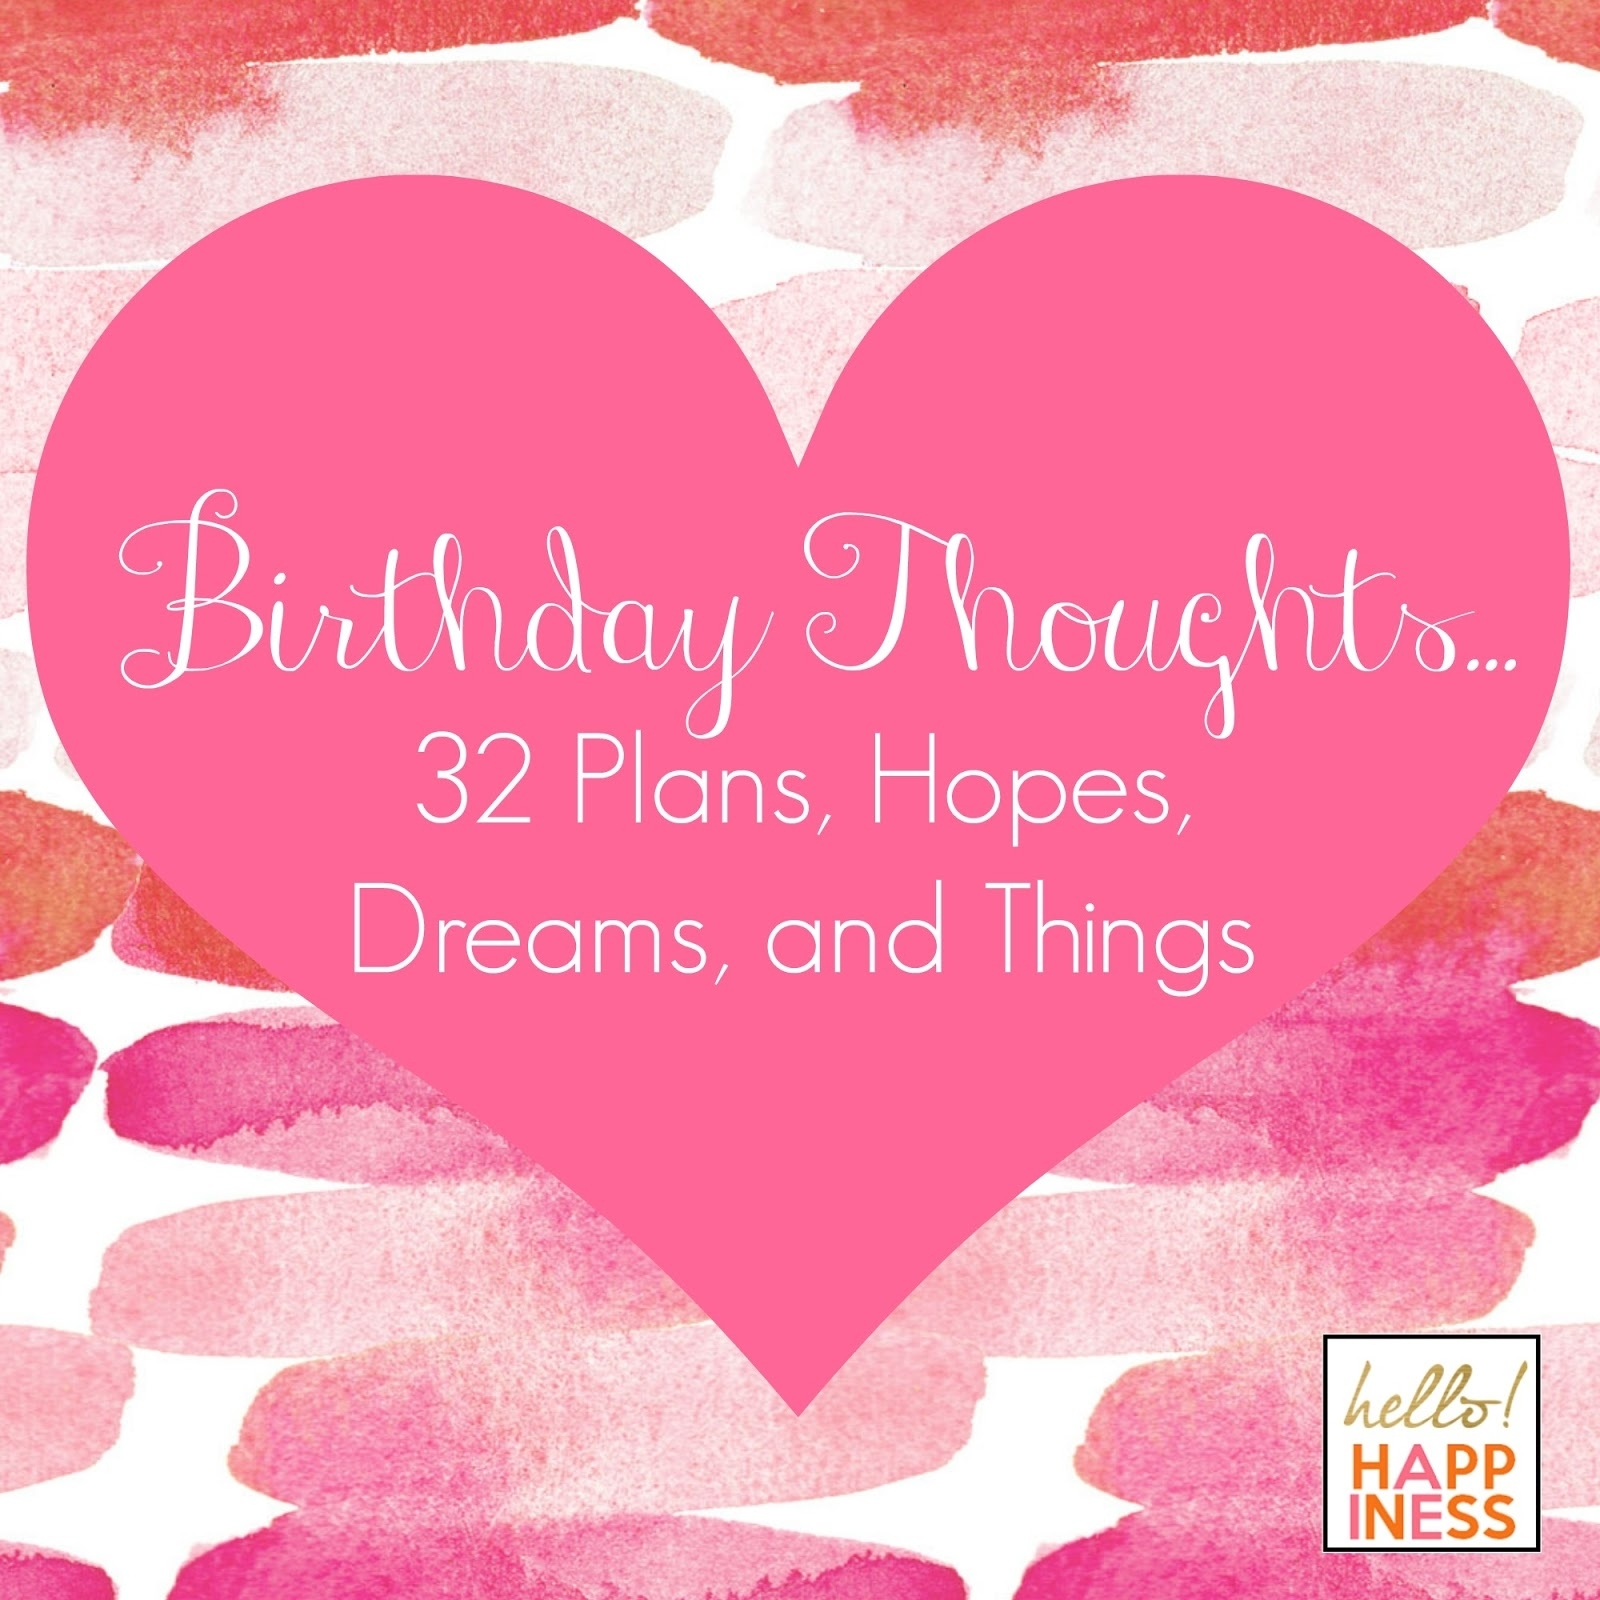 Birthday Thoughts 32 Things | Hello! Happiness